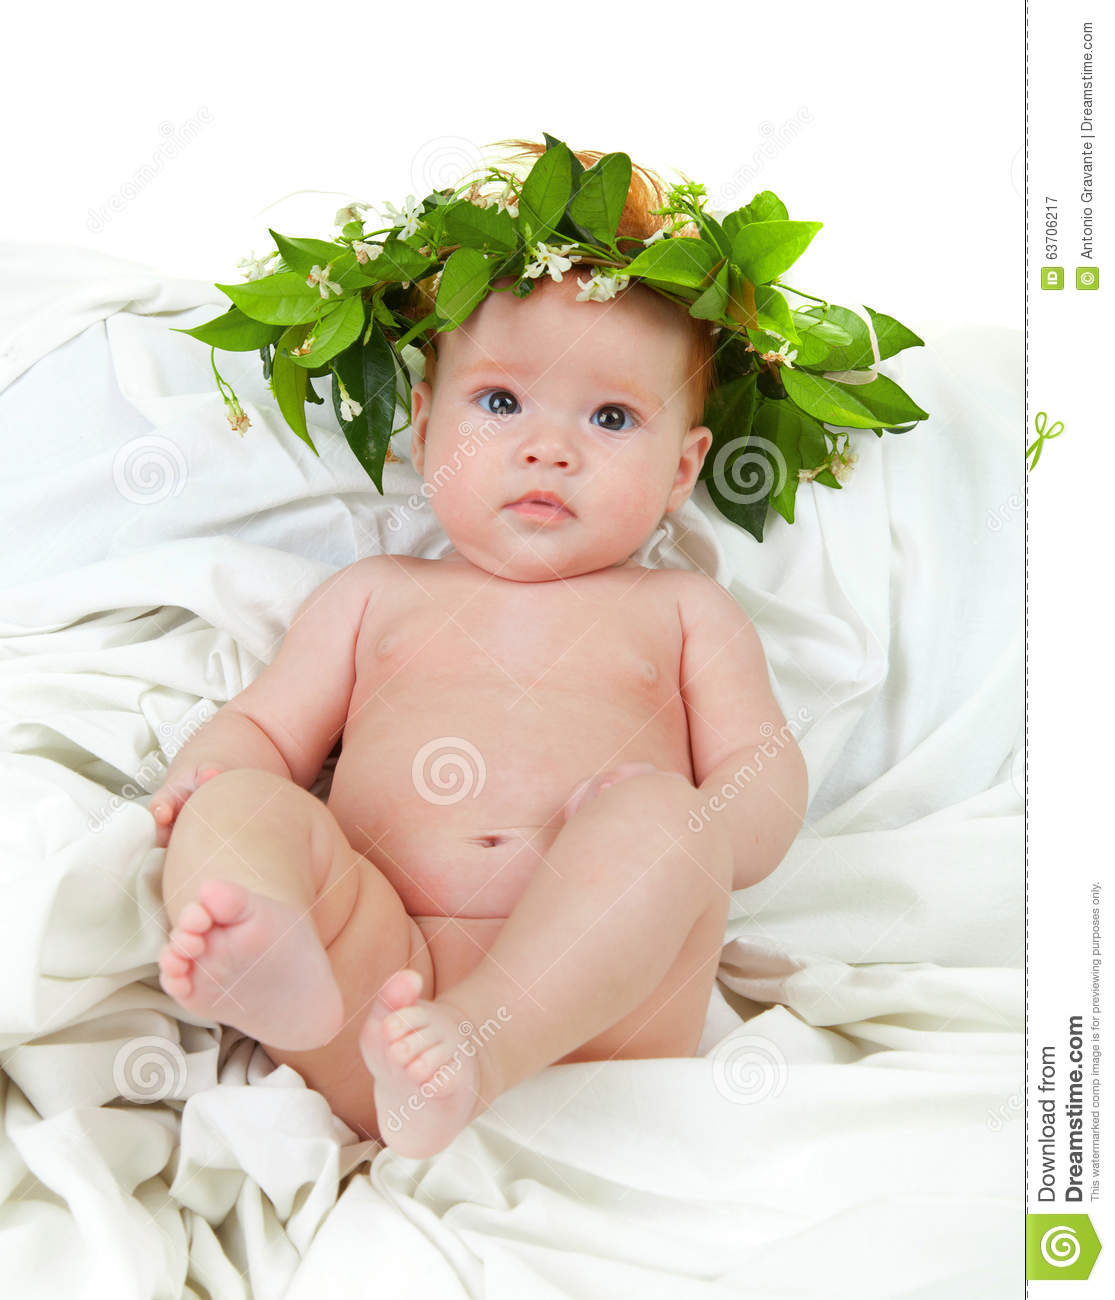 Pictures of naked toddler girls join. And